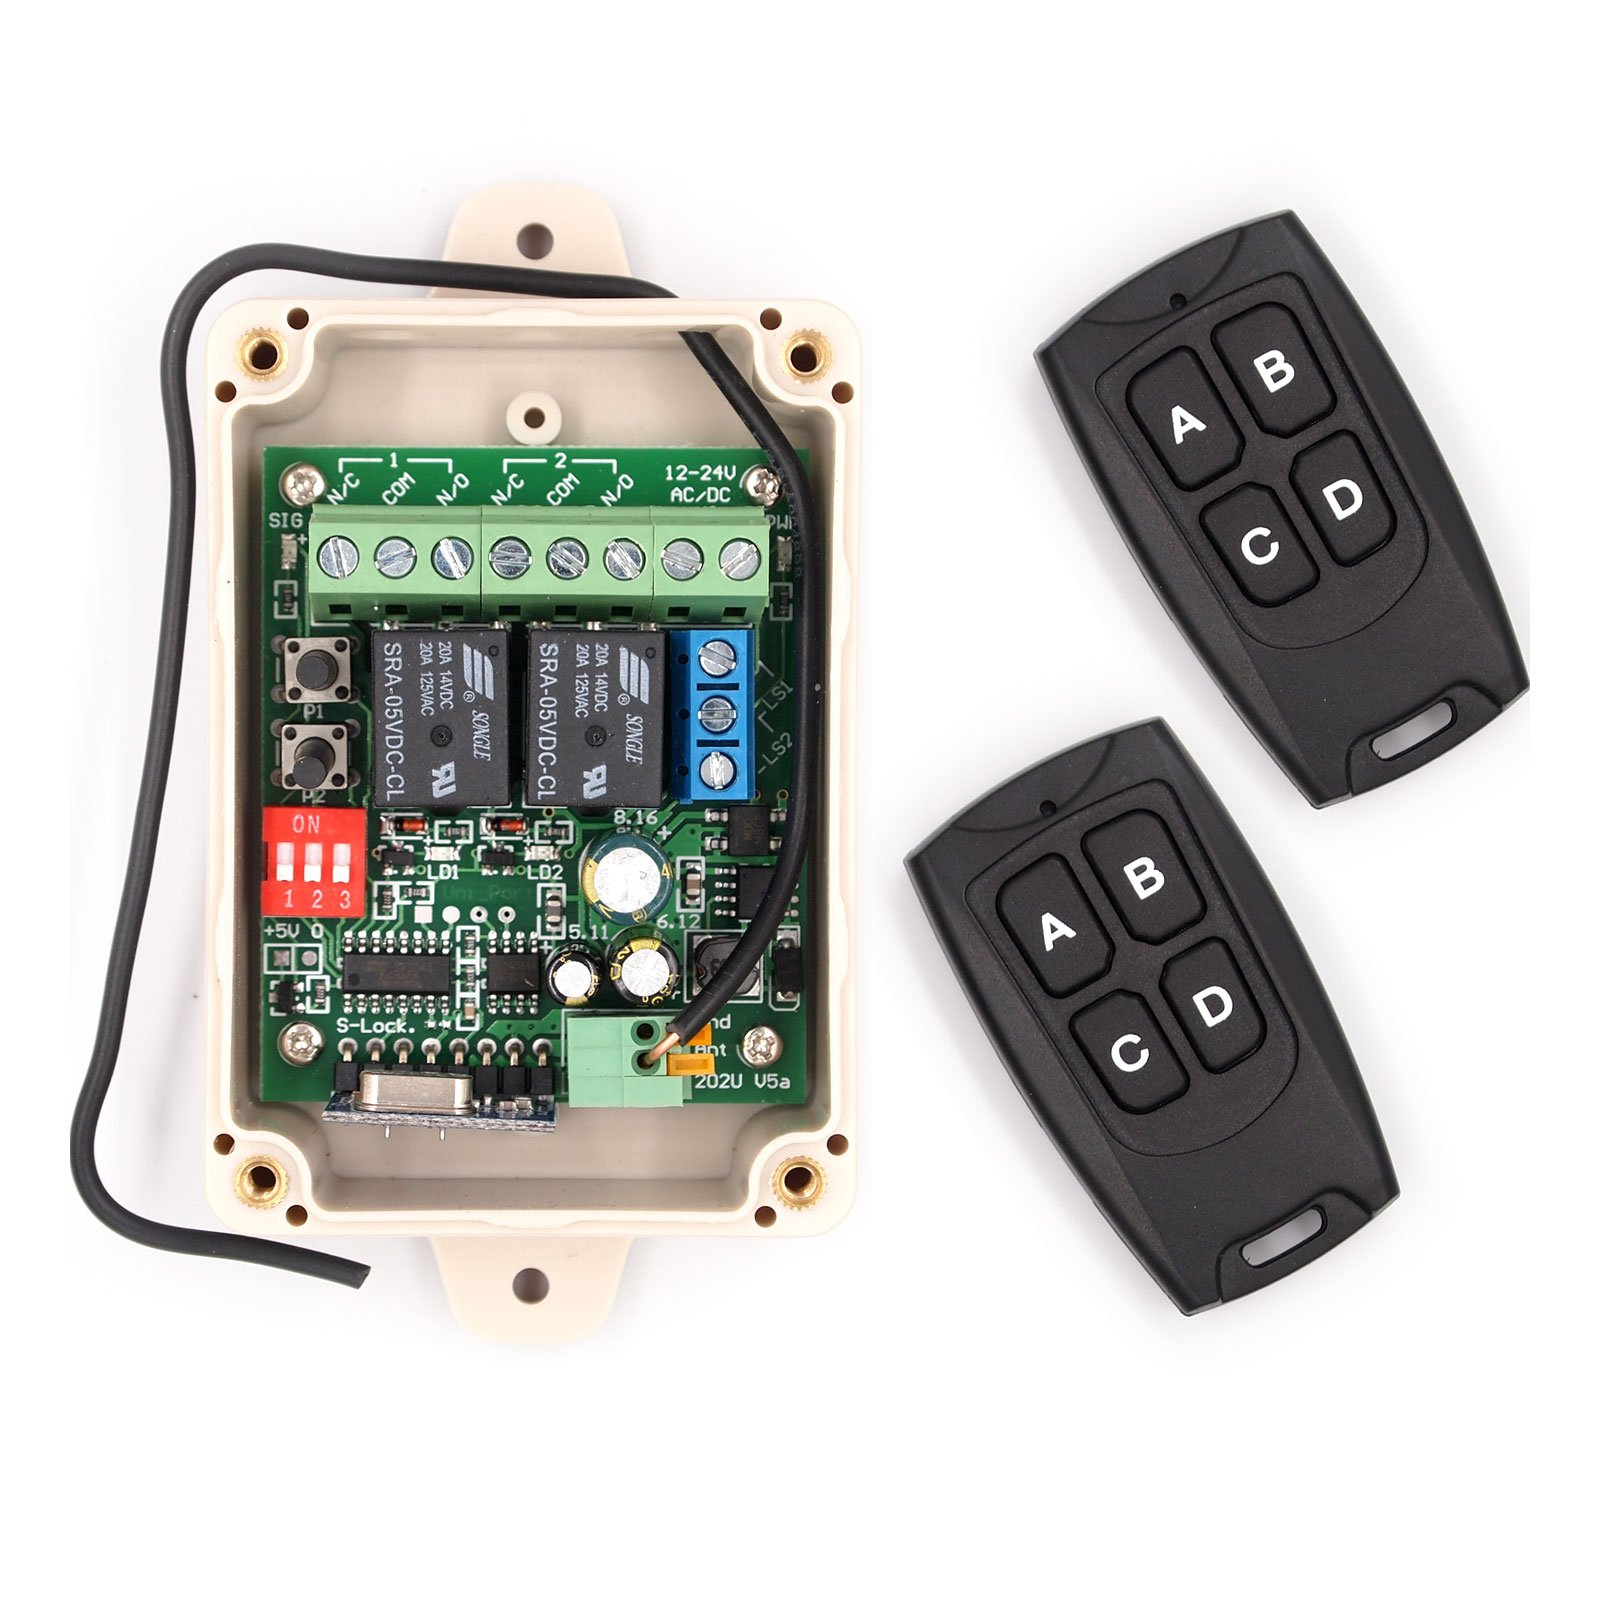 switch reviews design smart sockets of trusted lightwave rf and review light build generation